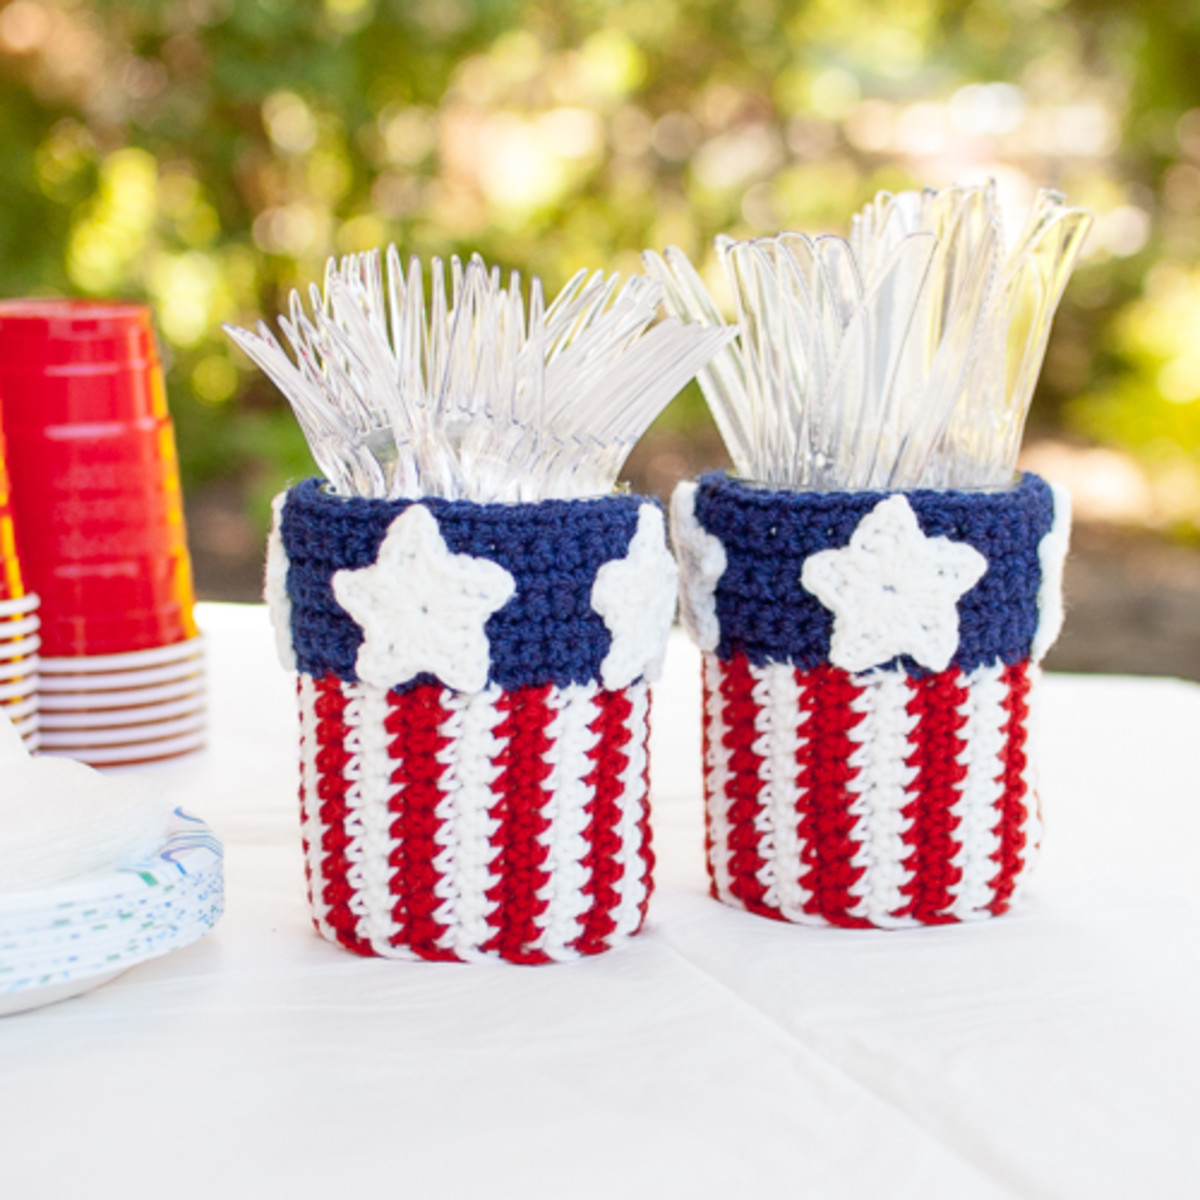 Patriotic Mason Jar Utensil Holder Crochet Pattern from petalstopicots.com